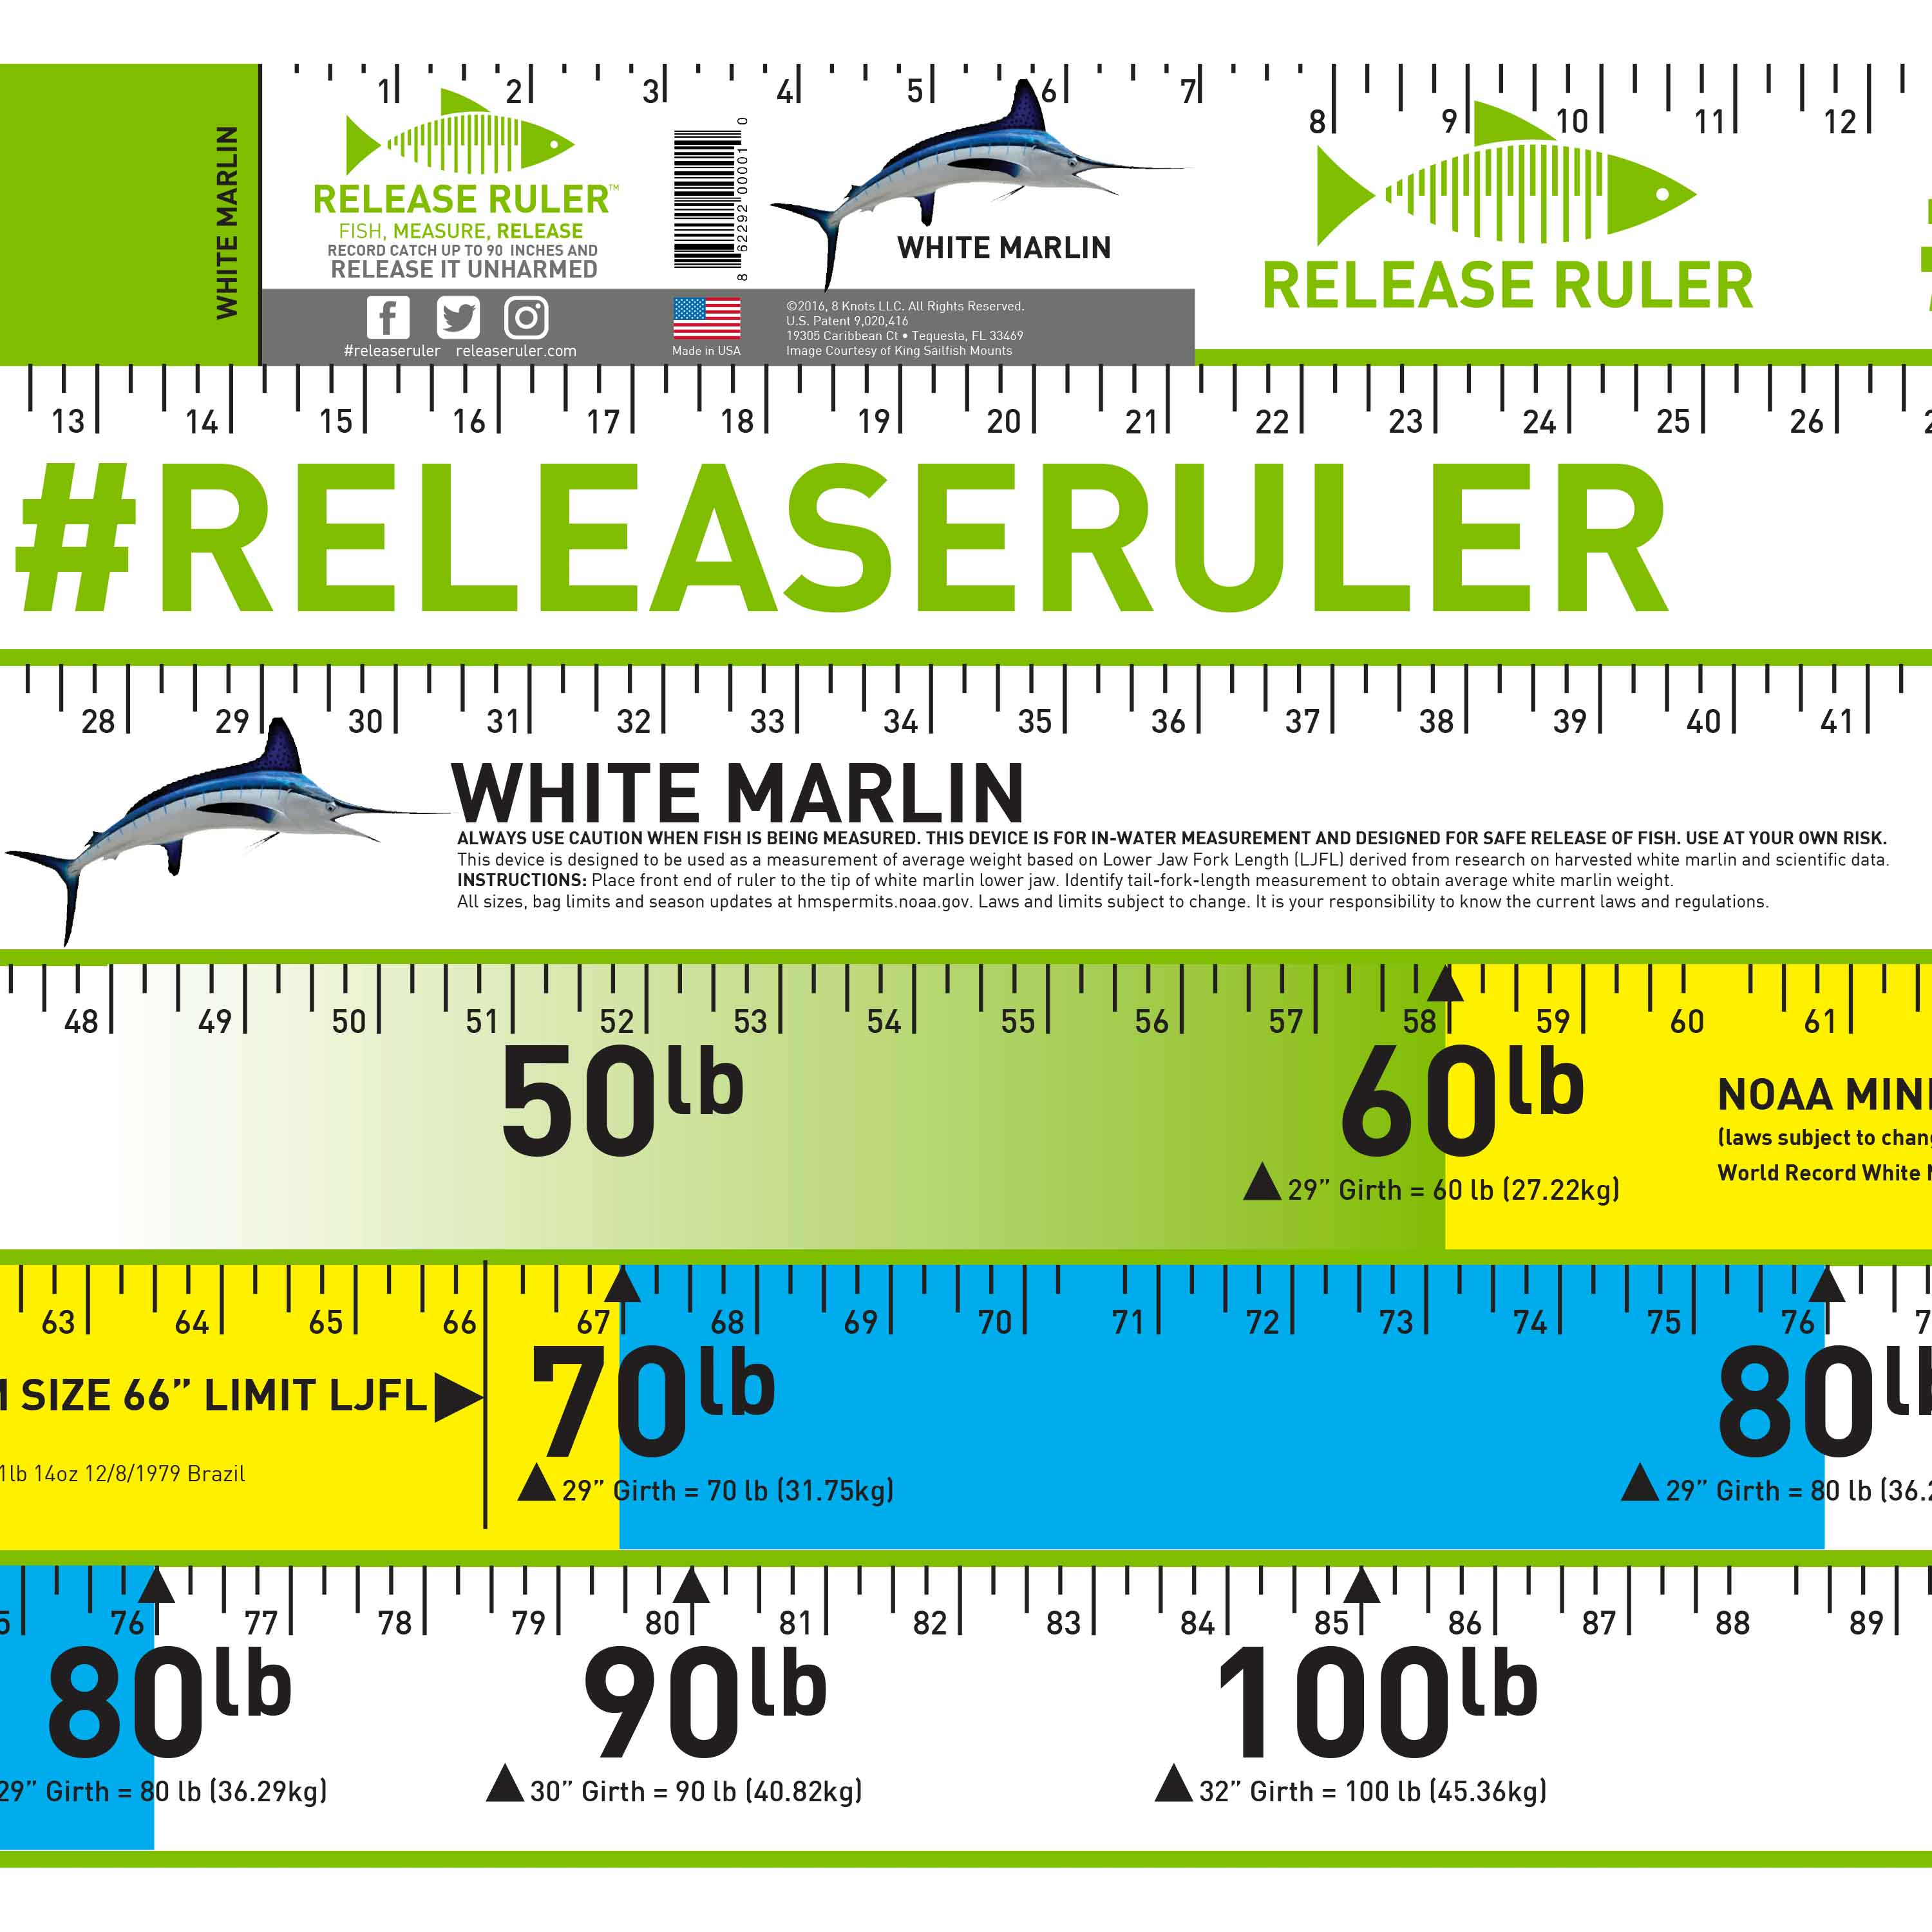 Tarpon release ruler related products nvjuhfo Images